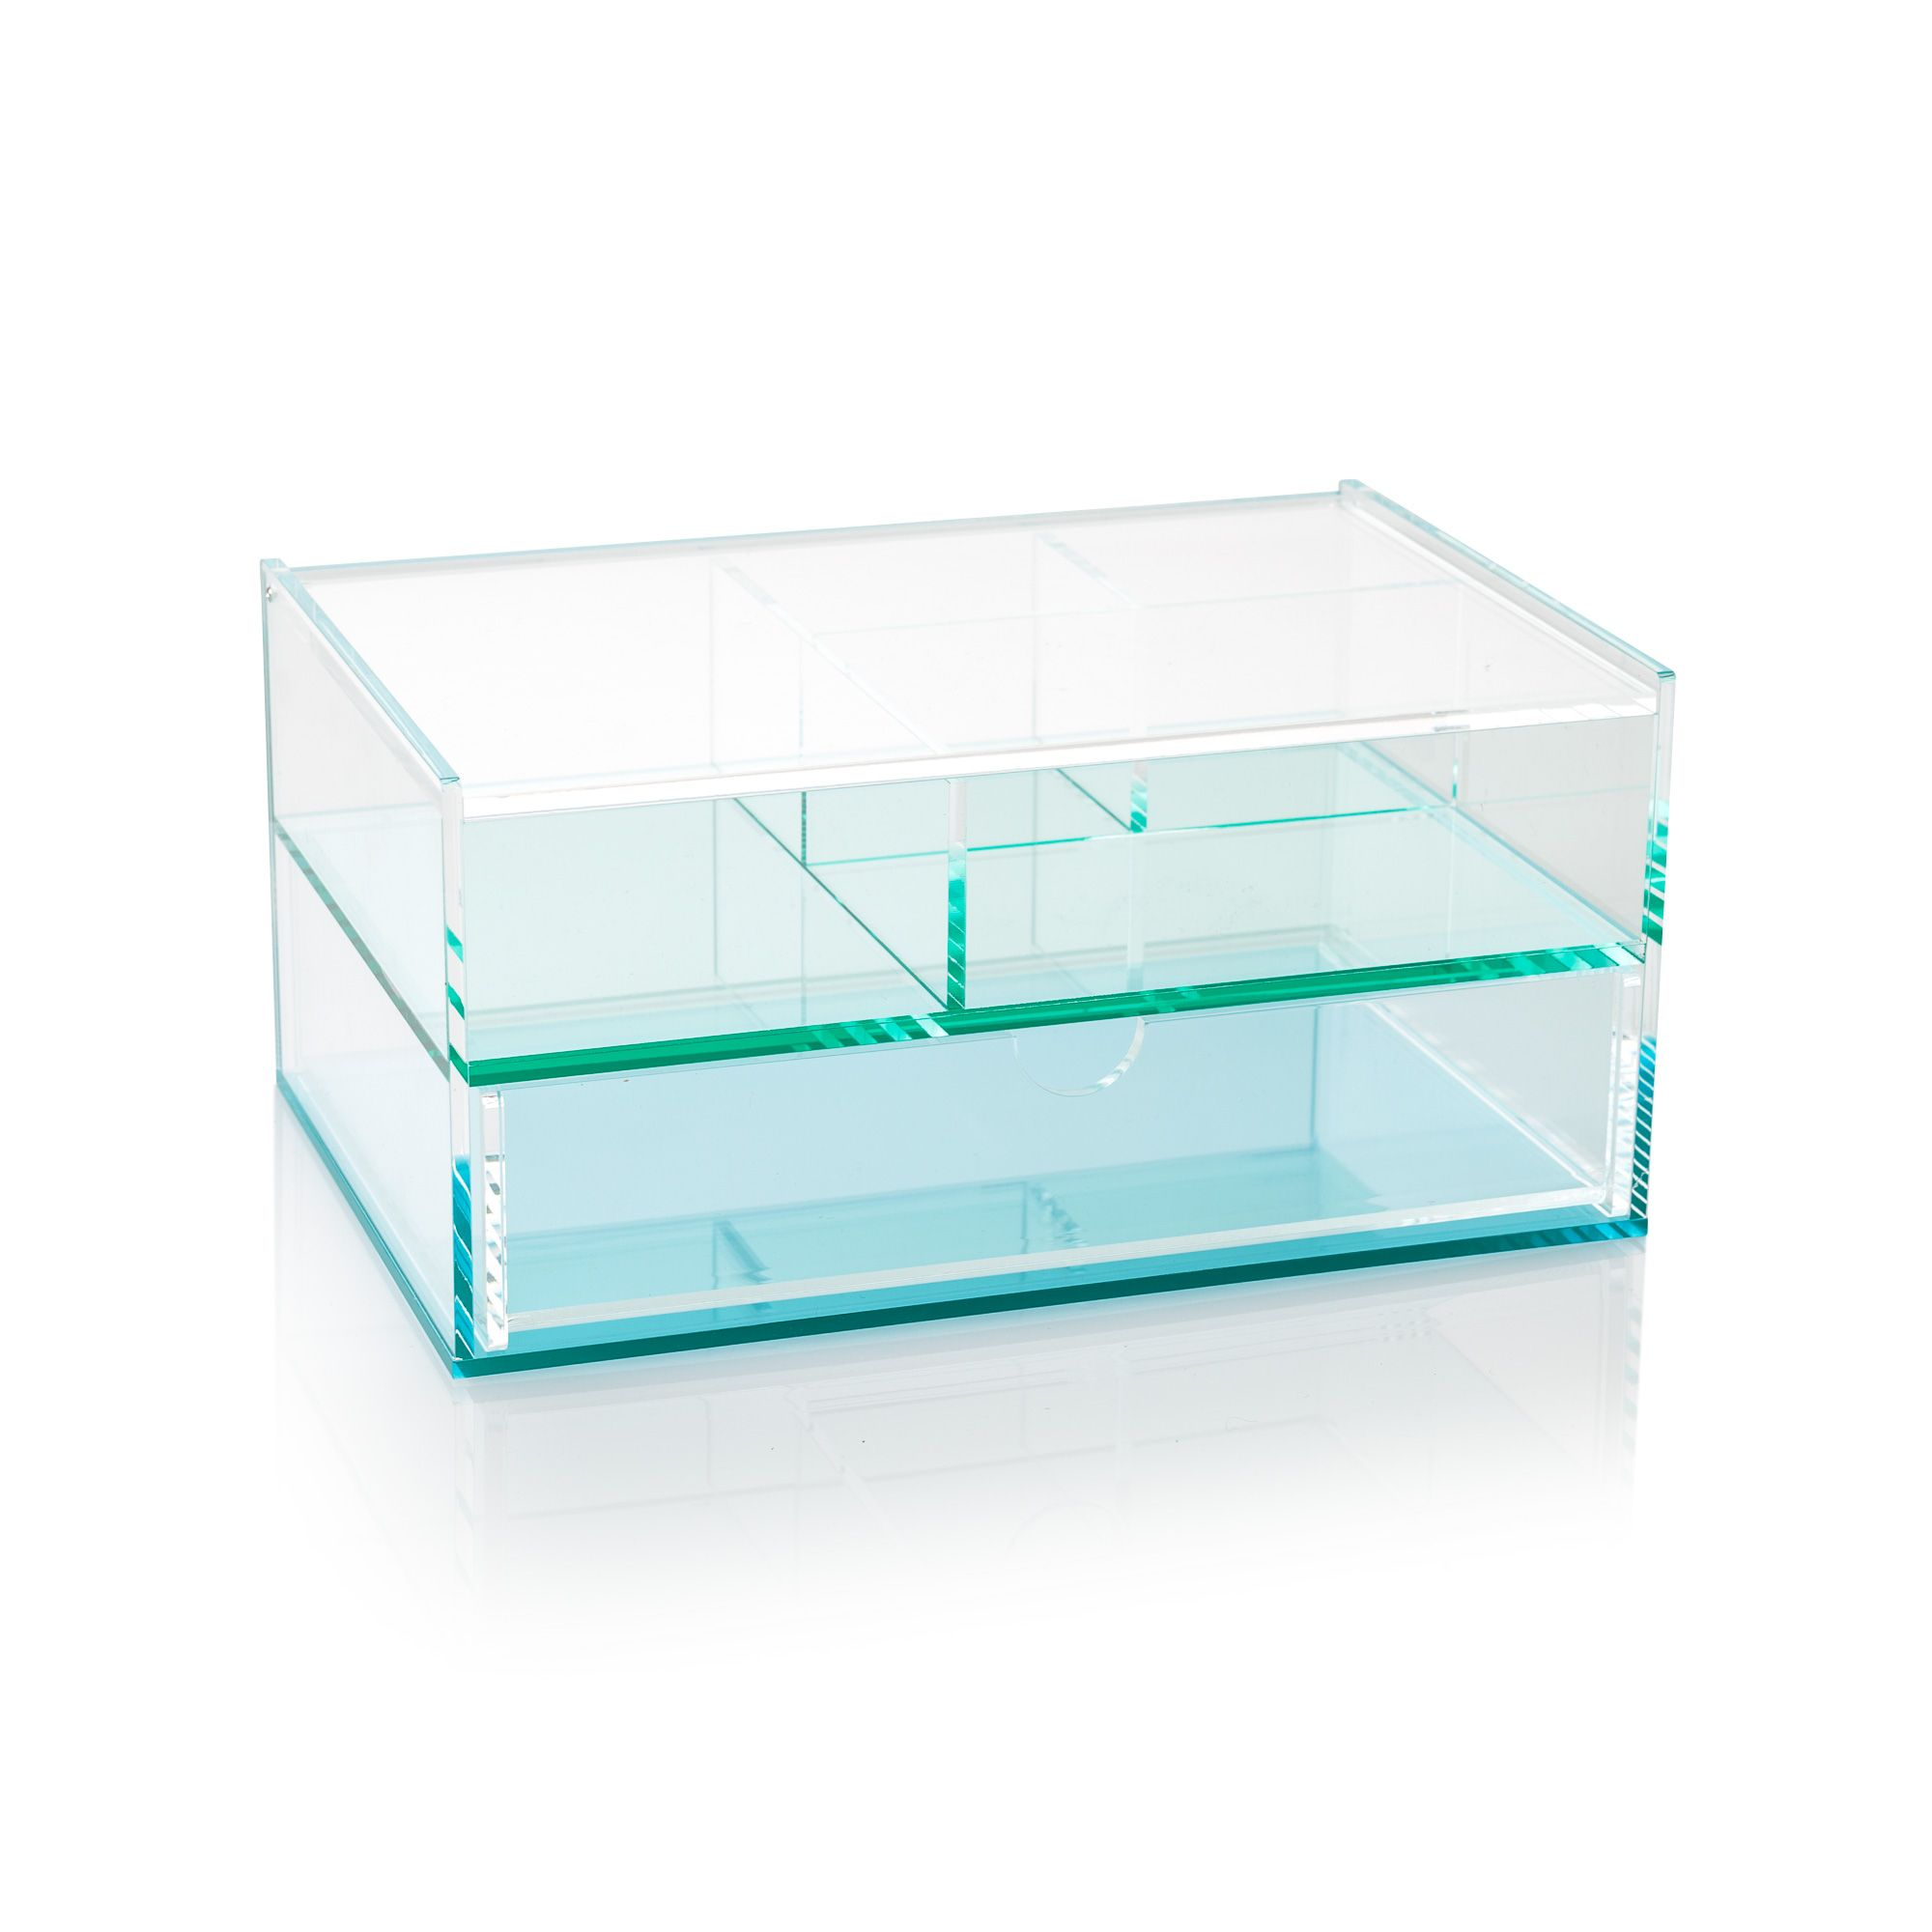 Buy The Blue Acrylic Storage Box With Drawers At Oliver Bonas. Enjoy Free  UK Standard